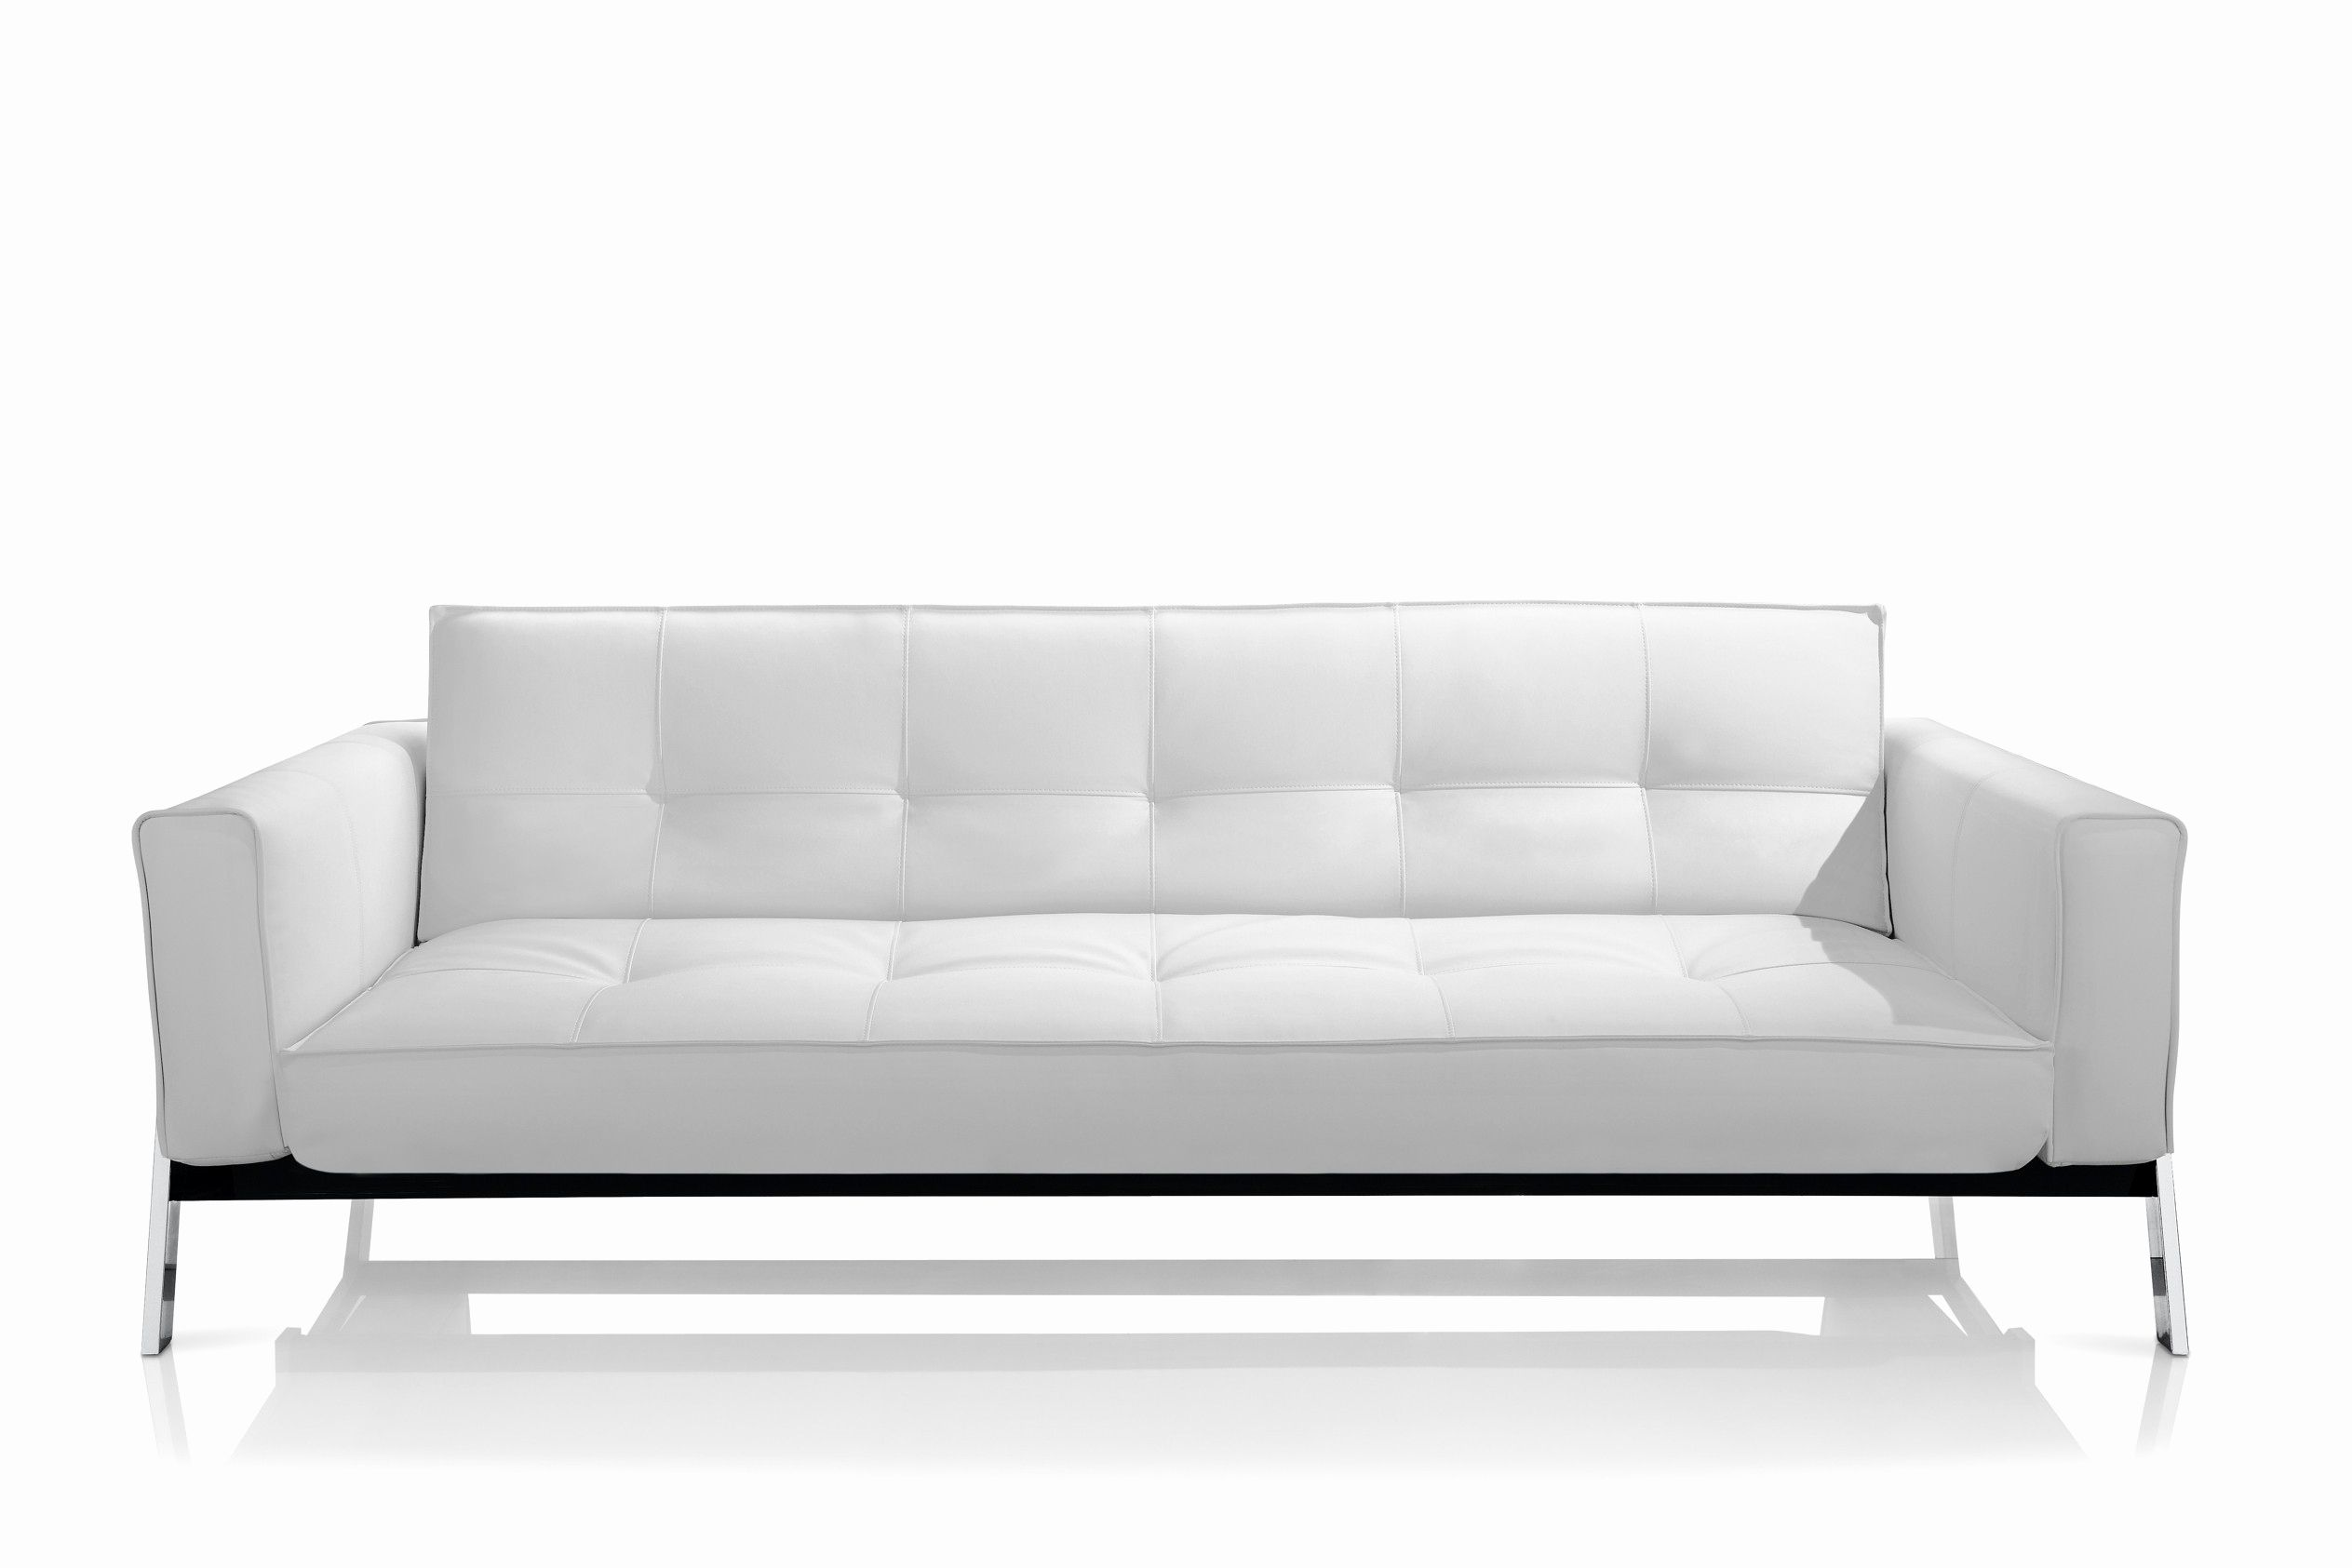 Inspirational White Leather Sofa Images Interior Suede Leather Sofa White Settee For Sale Traditional Ch Modern Sofa Bed Modern White Sofa White Leather Sofas